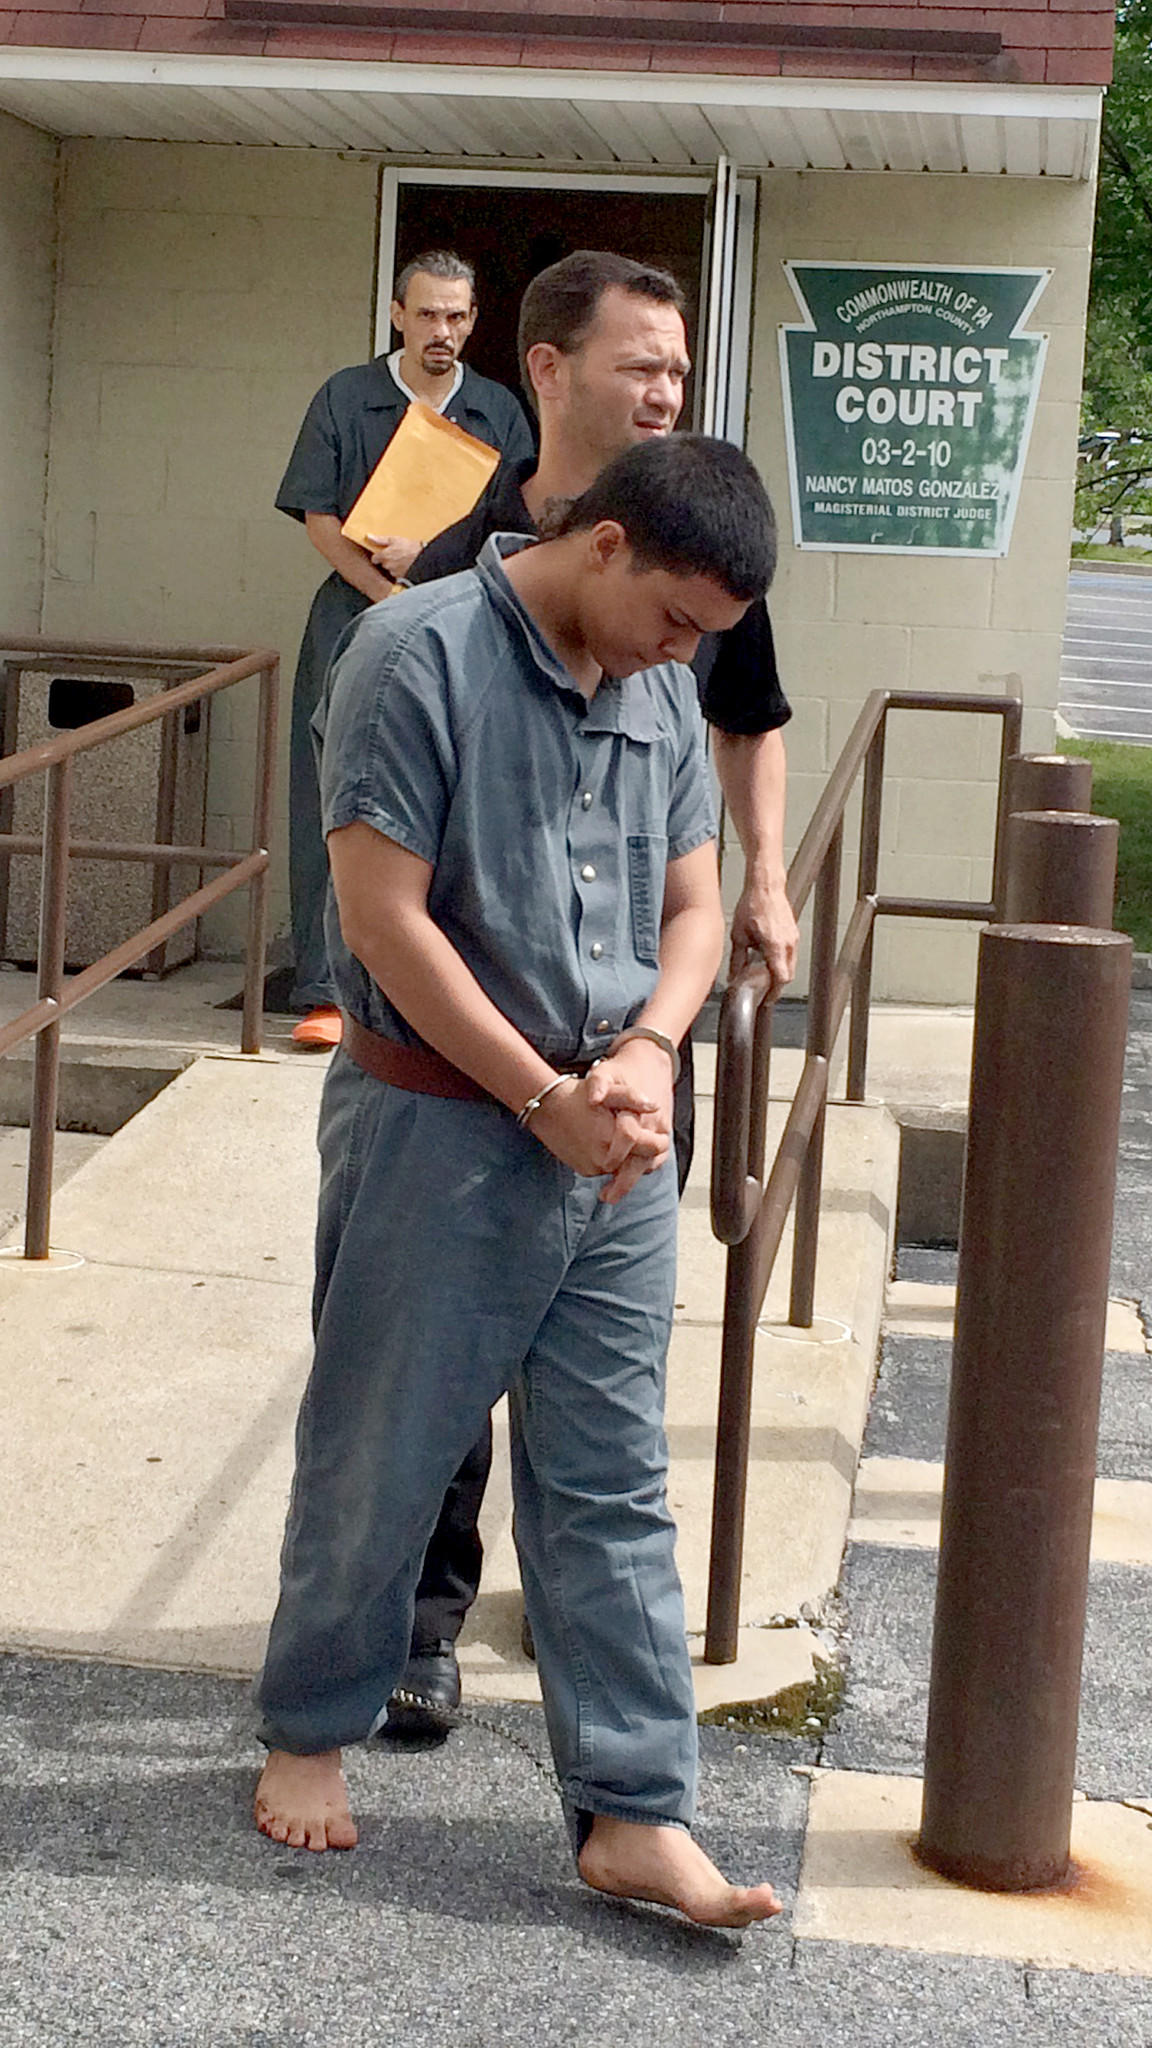 Bryan Sanchez-Ozorio (right) is escorted from his arraignment at district court in south Bethlehem on Wednesday. Sanchez-Ozorio is charged with attempted homicide and attempted rape in the strangling of a Lehigh University student in her off-campus apartment early Wednesday morning.